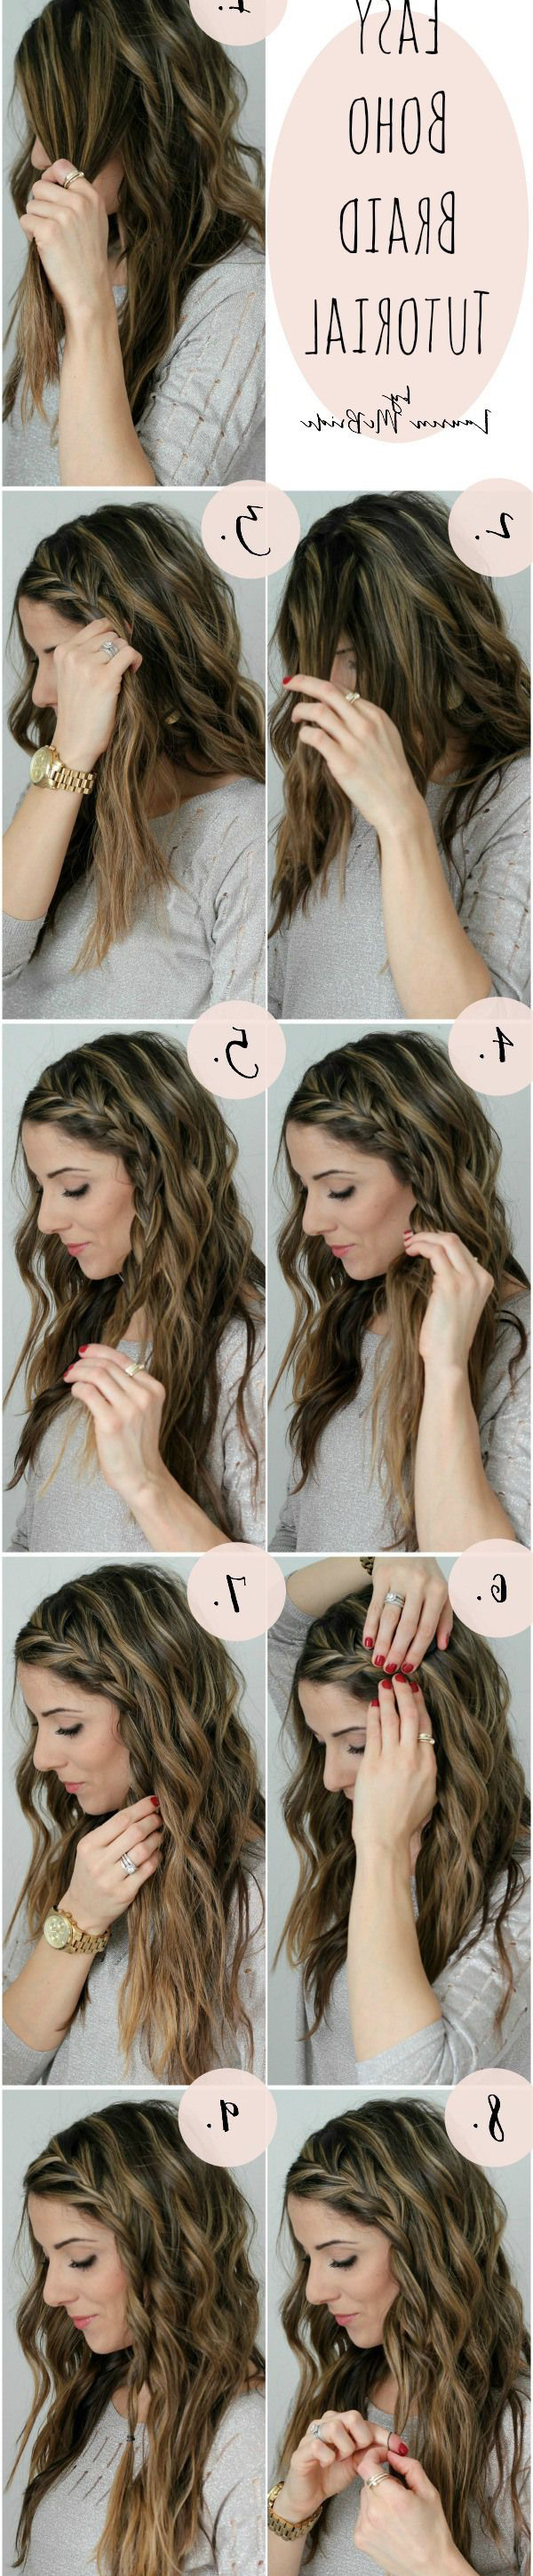 15 Simple But Cute Graduation Hairstyles To Wear Under Your Cap Intended For Graduation Short Hairstyles (View 17 of 25)